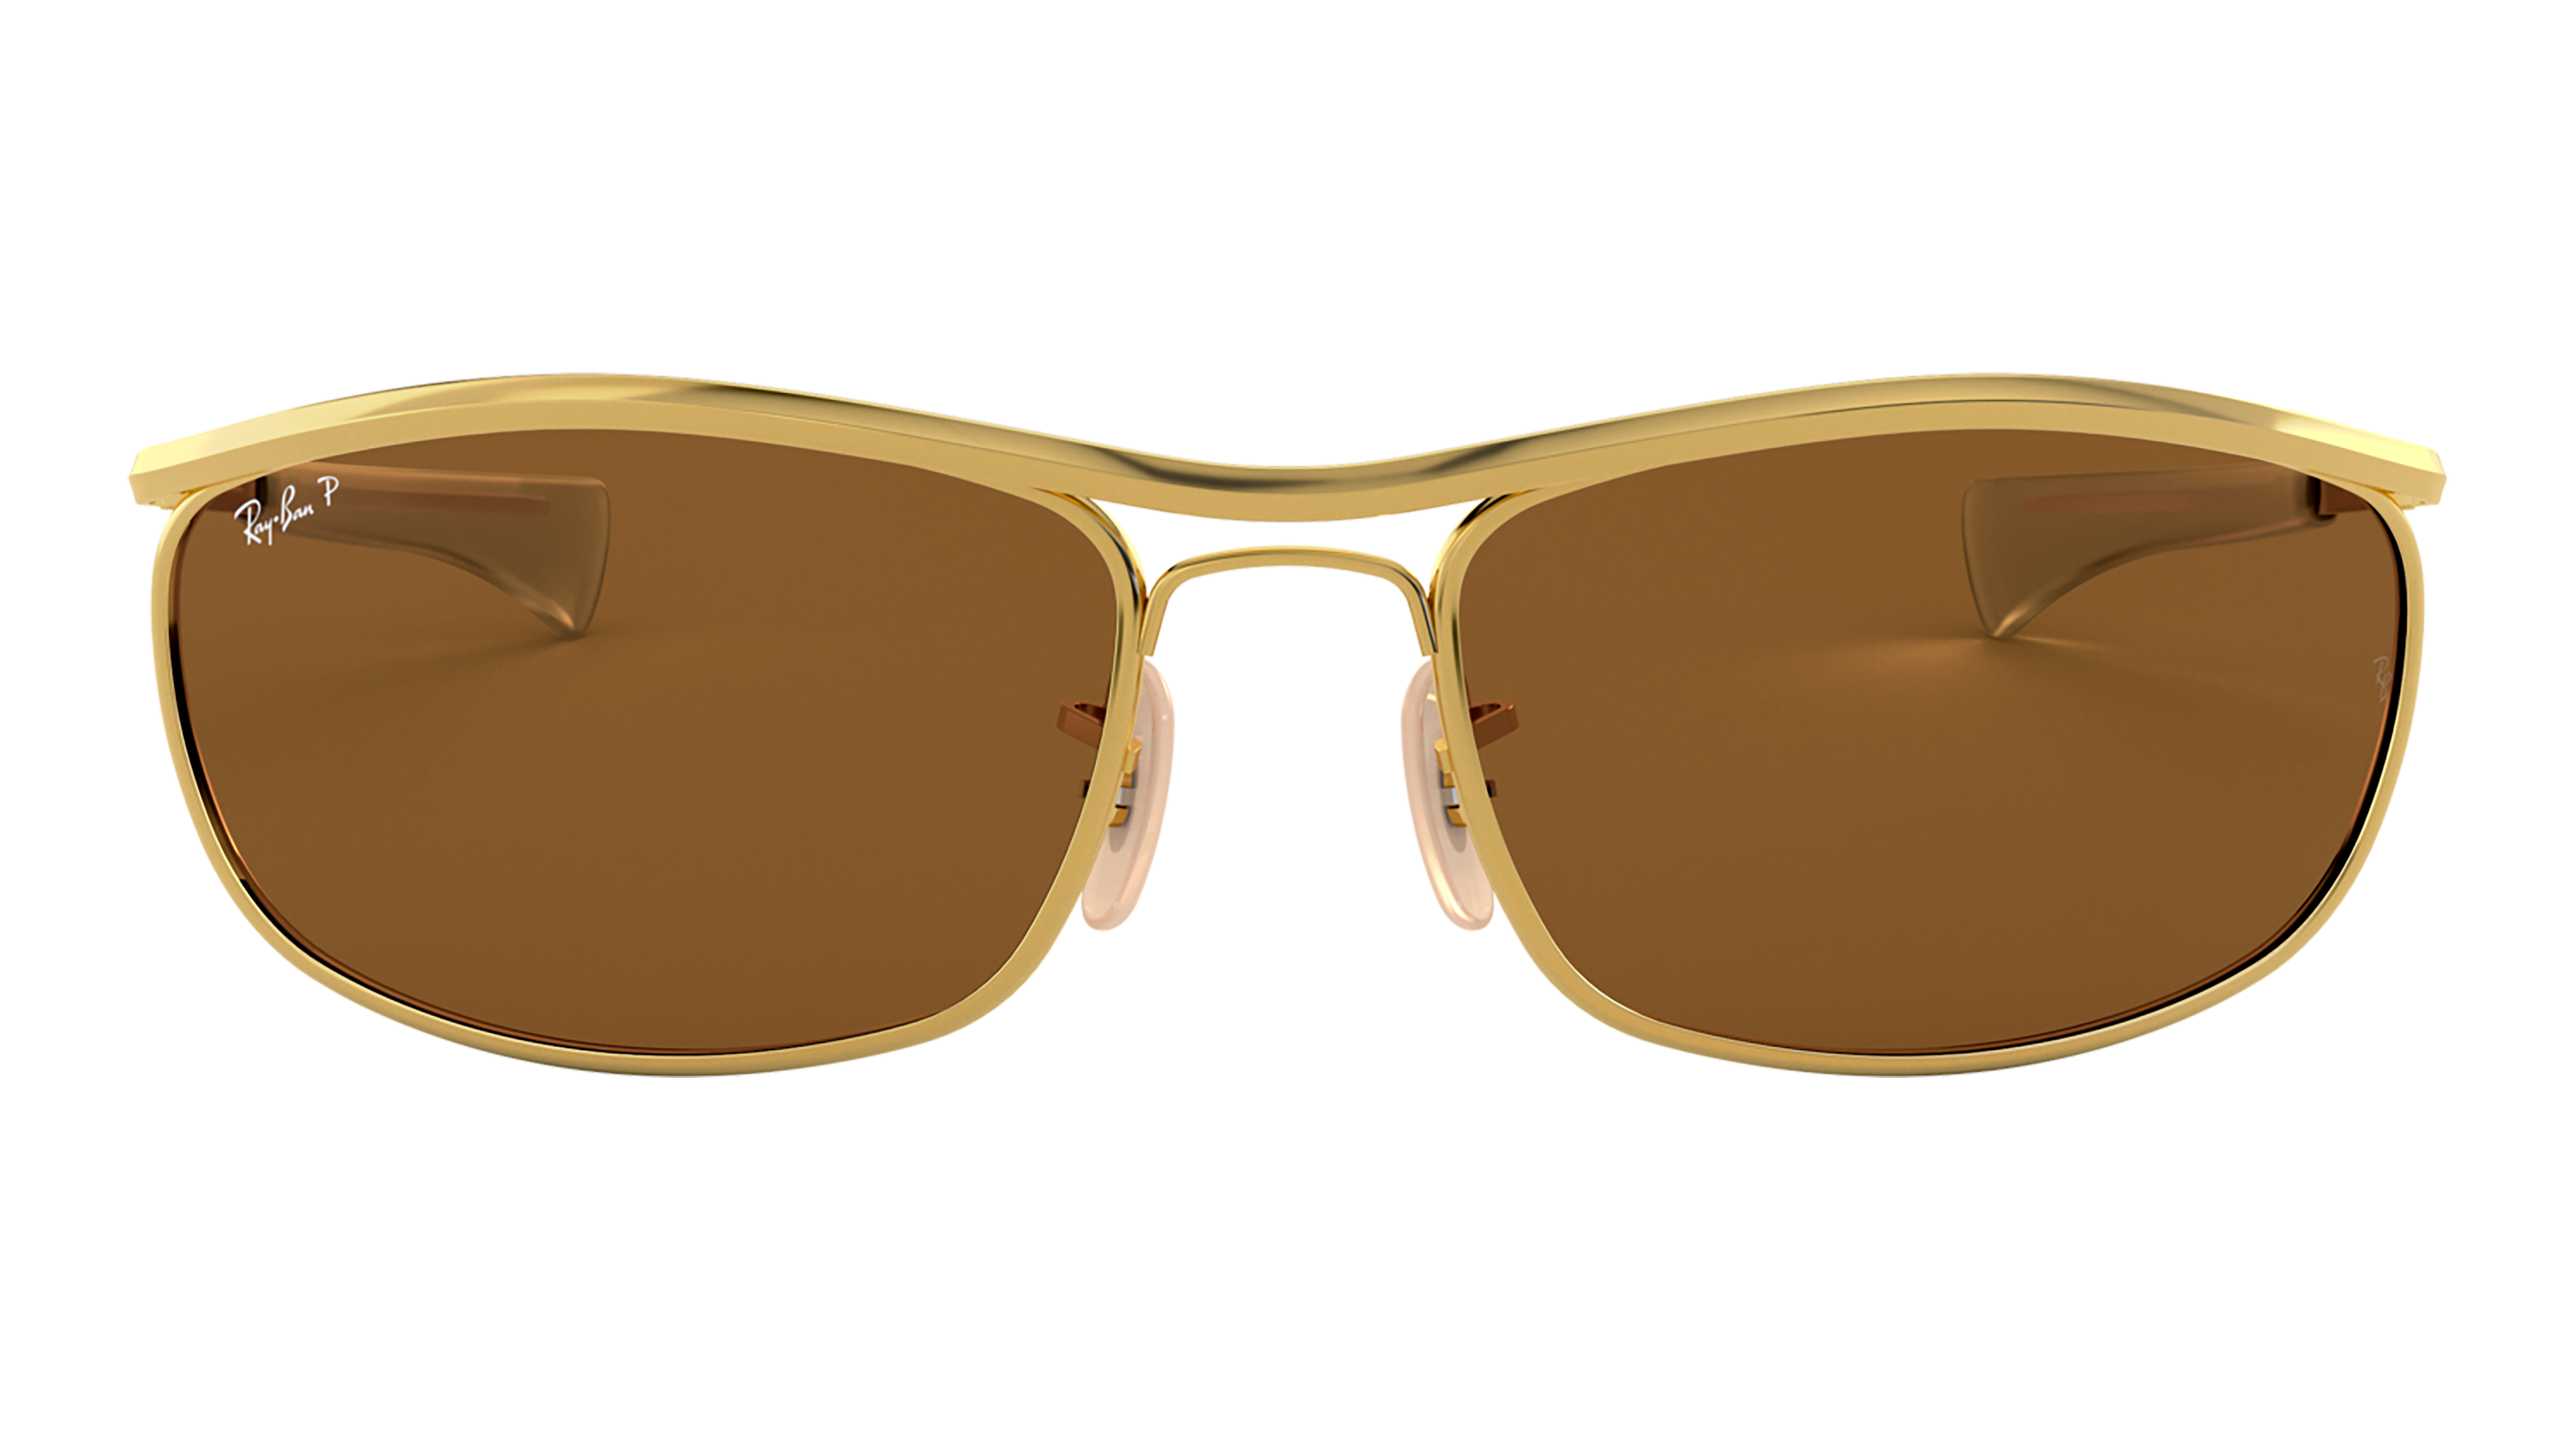 Front Ray-Ban Ray-Ban 0RB3119M 001/57 62/18 Goud/Bruin